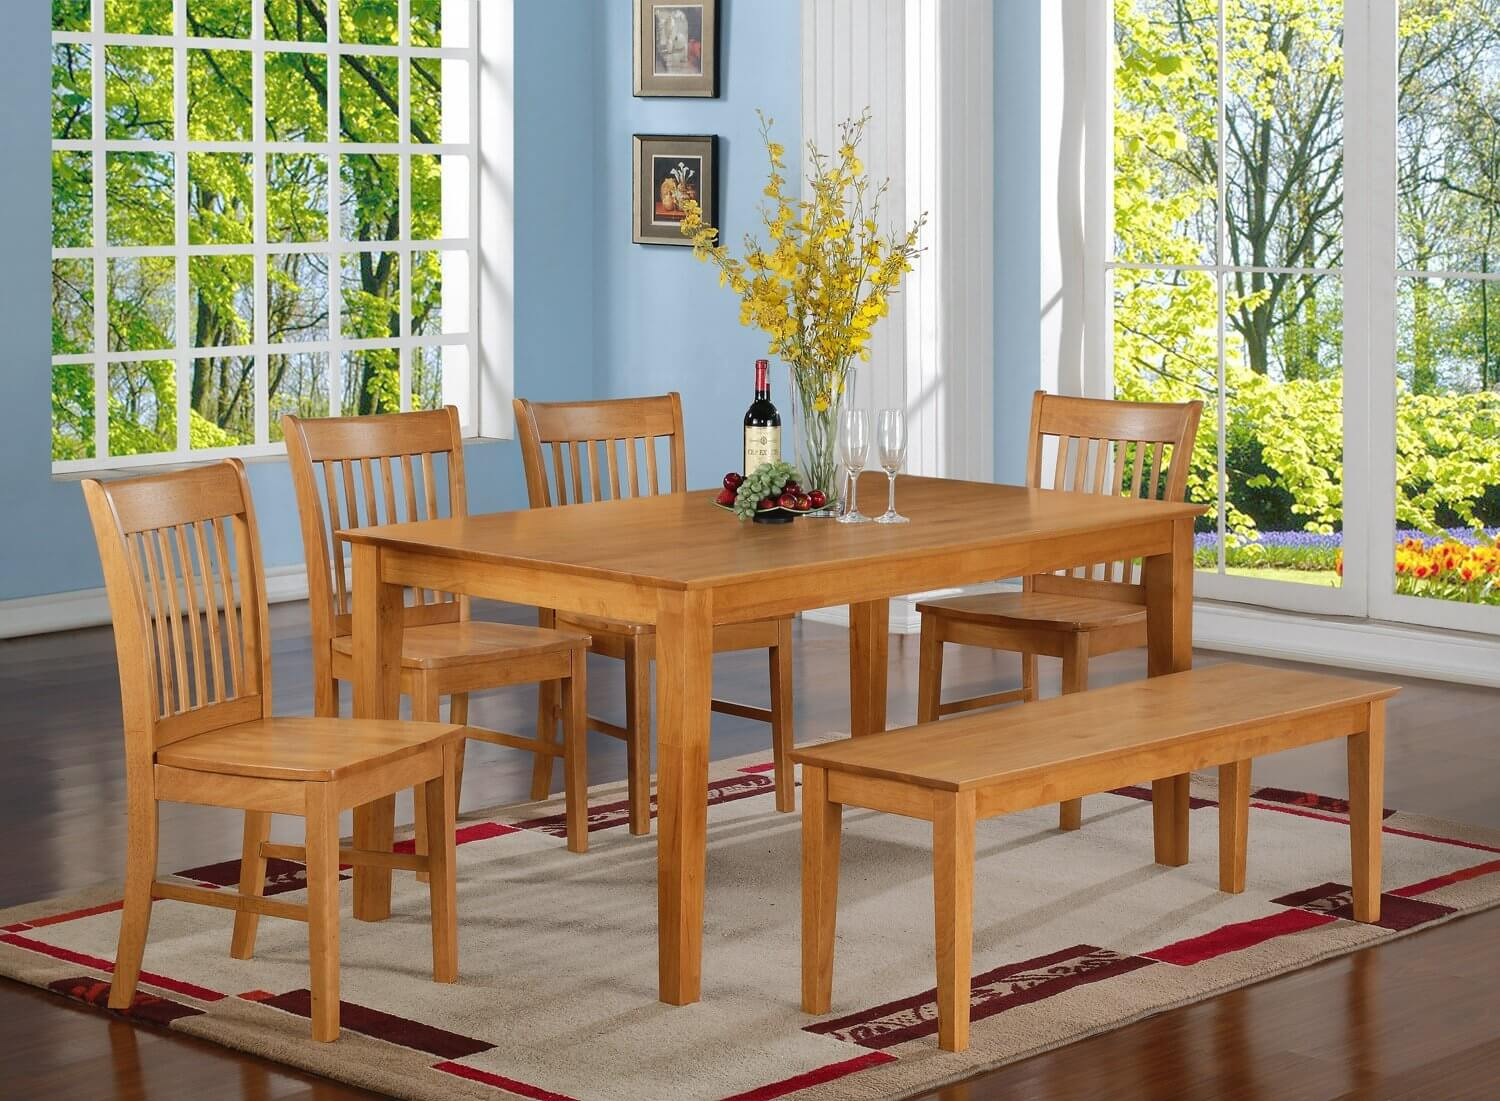 dining room sets bench seating kitchen tables Oak finish six piece bench style dining room set with large rectangle table It s